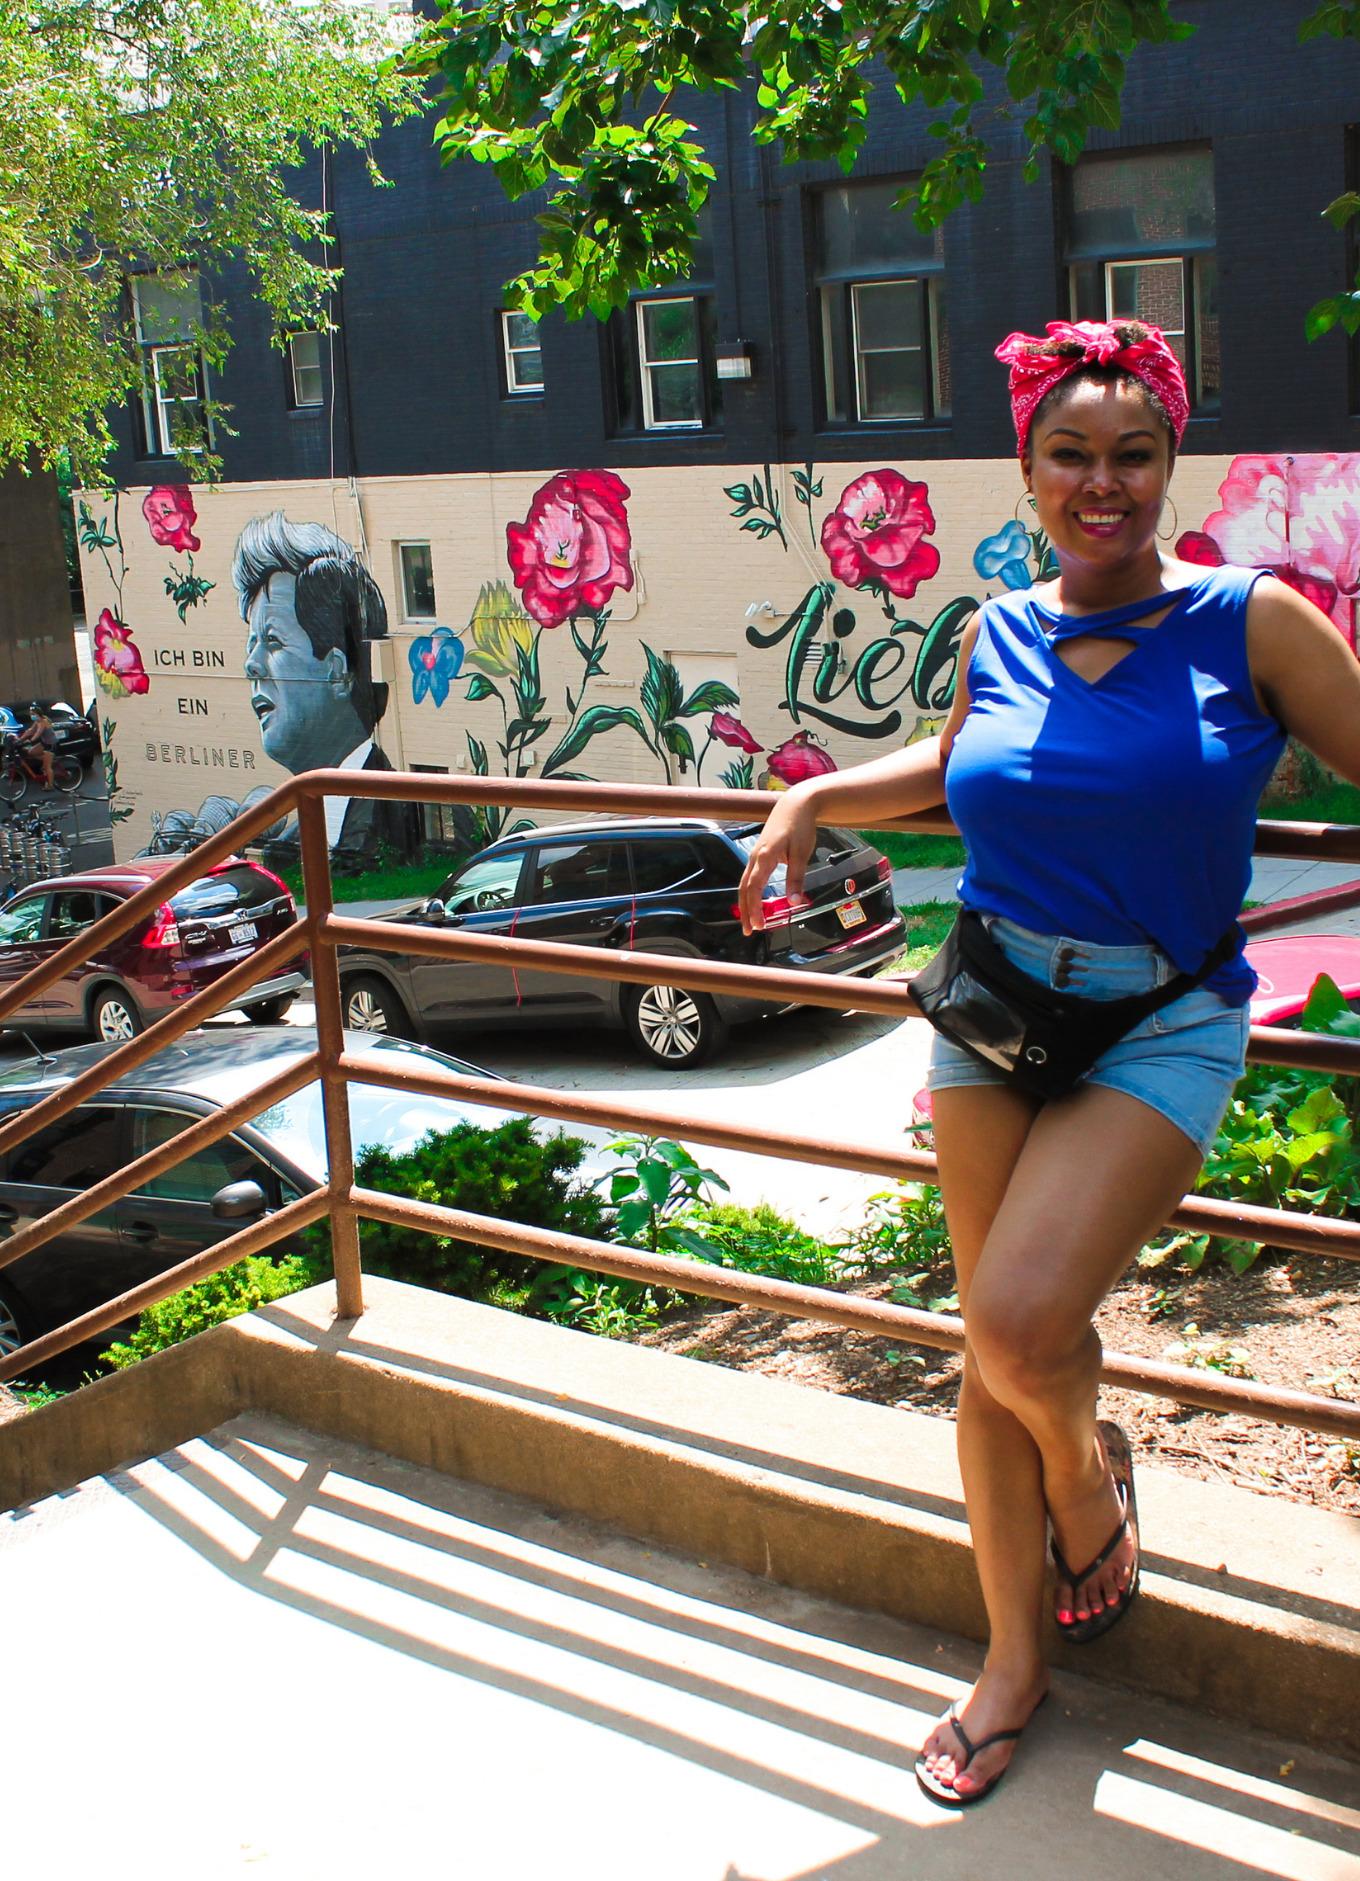 Blogger Rogan Smith wears a red bandana and a blue shirt. She poses against a rail with a mural of John F Kennedy in the background